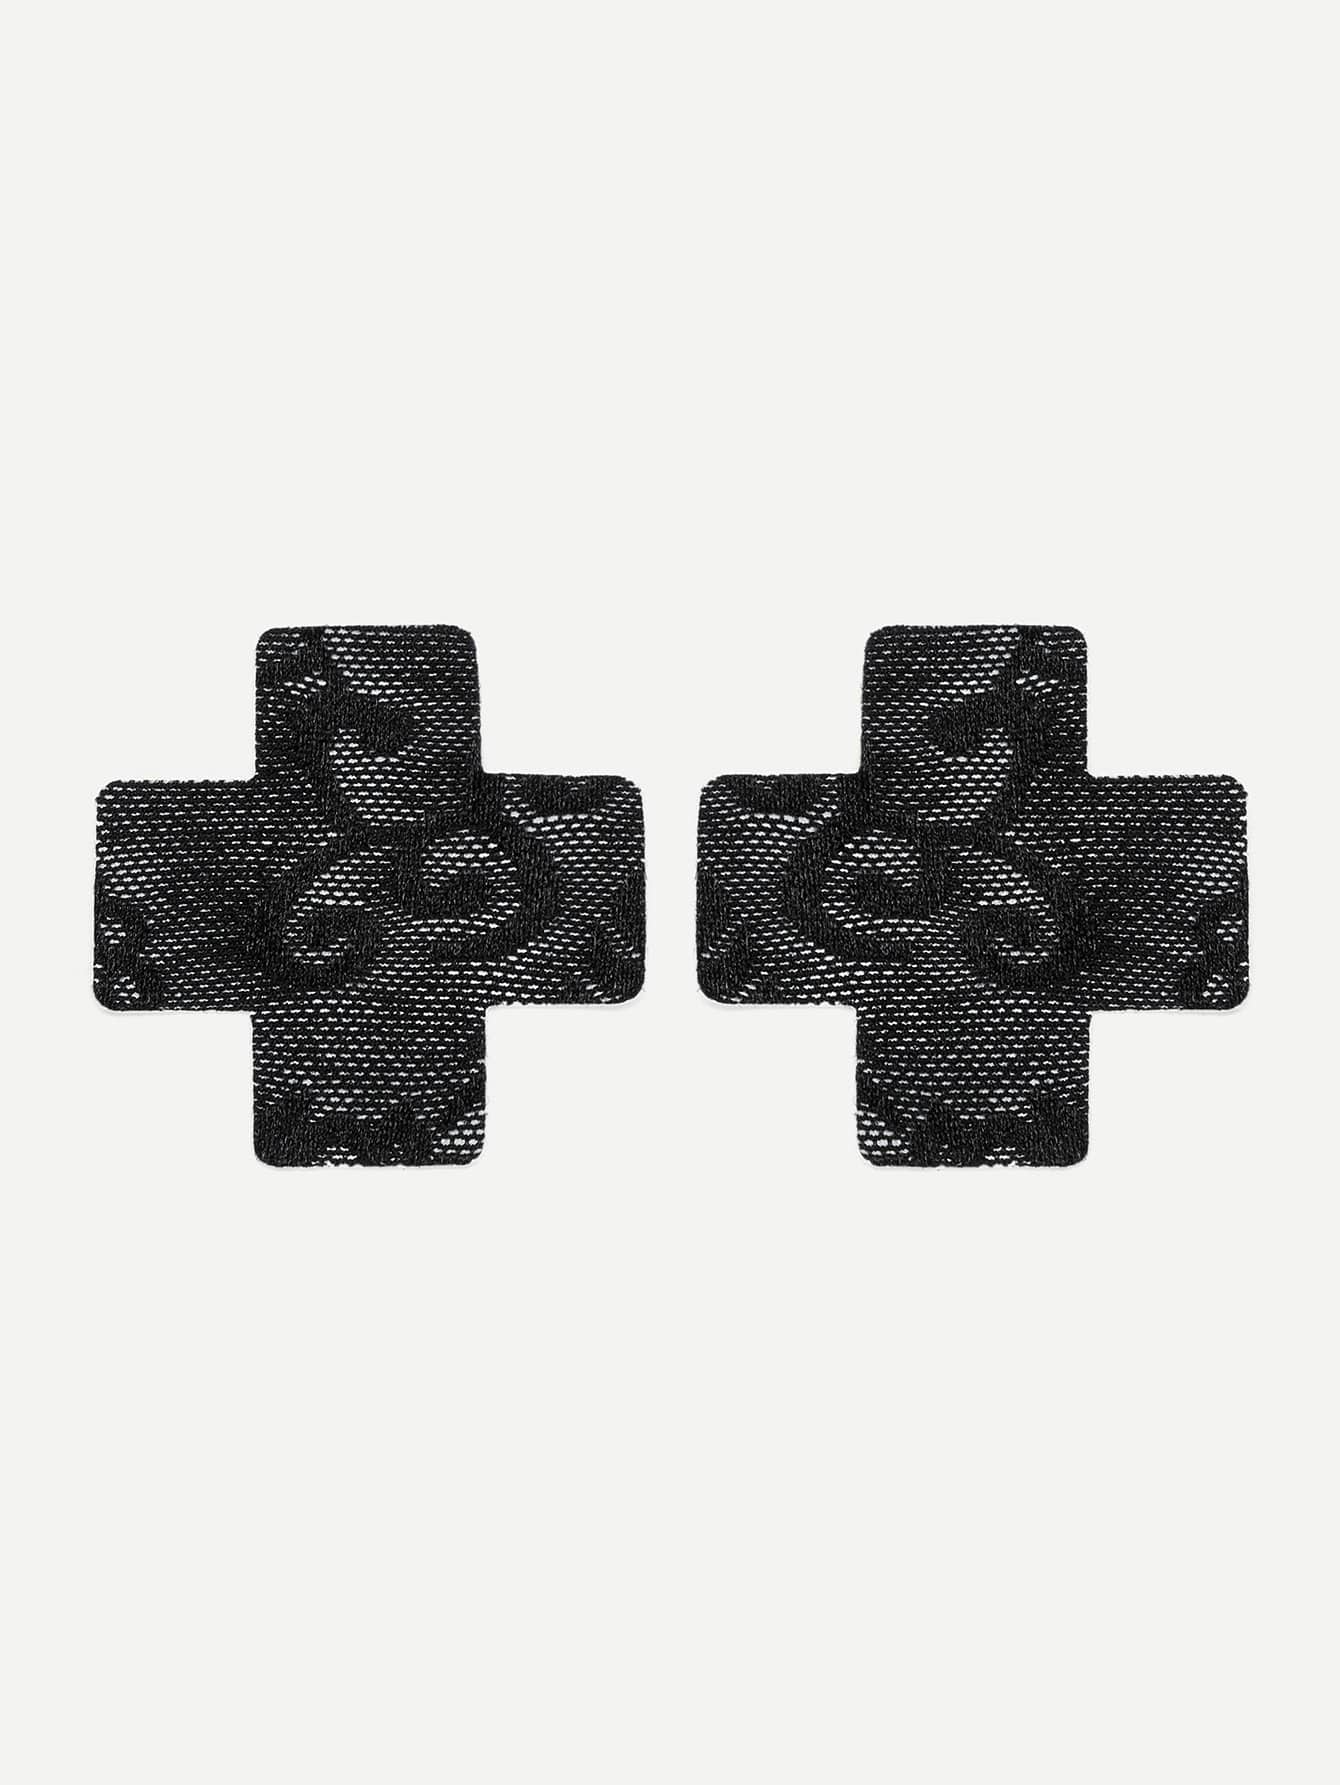 Cross Lace Nipples Covers retail box new creative iron man brand gaming mouse blue led optical usb wired mouse mice for gamer computer laptop pc gift